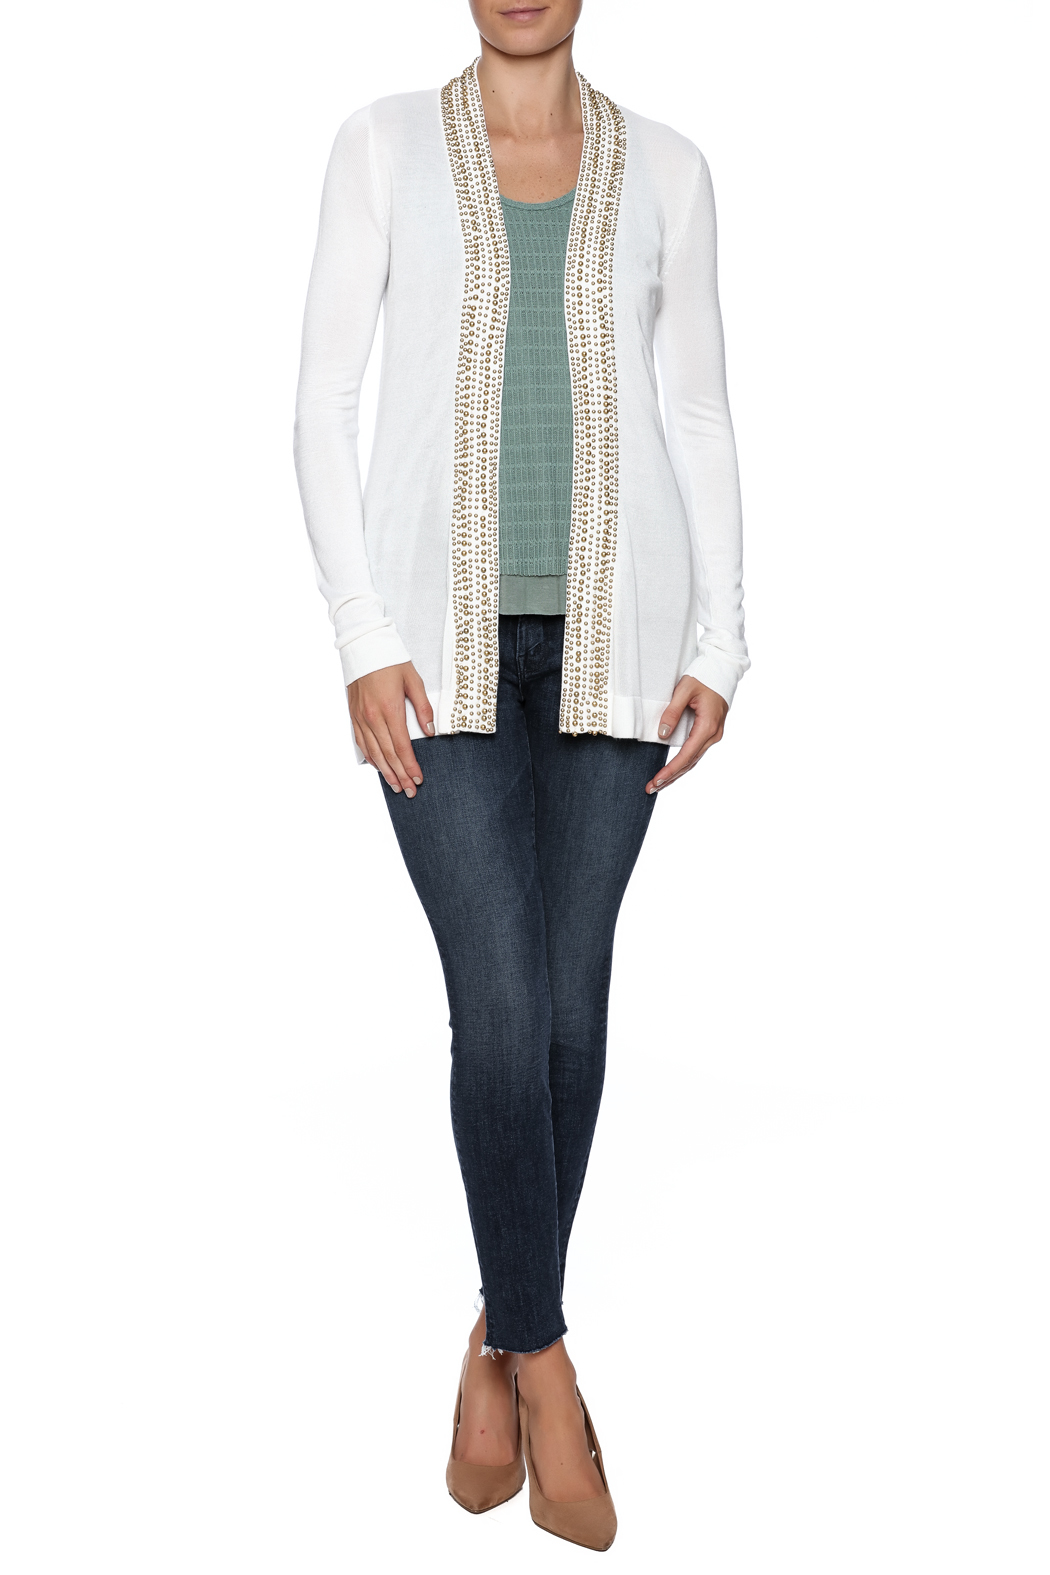 Belldini Beaded White Cardigan from Wisconsin by Simply Charming ...